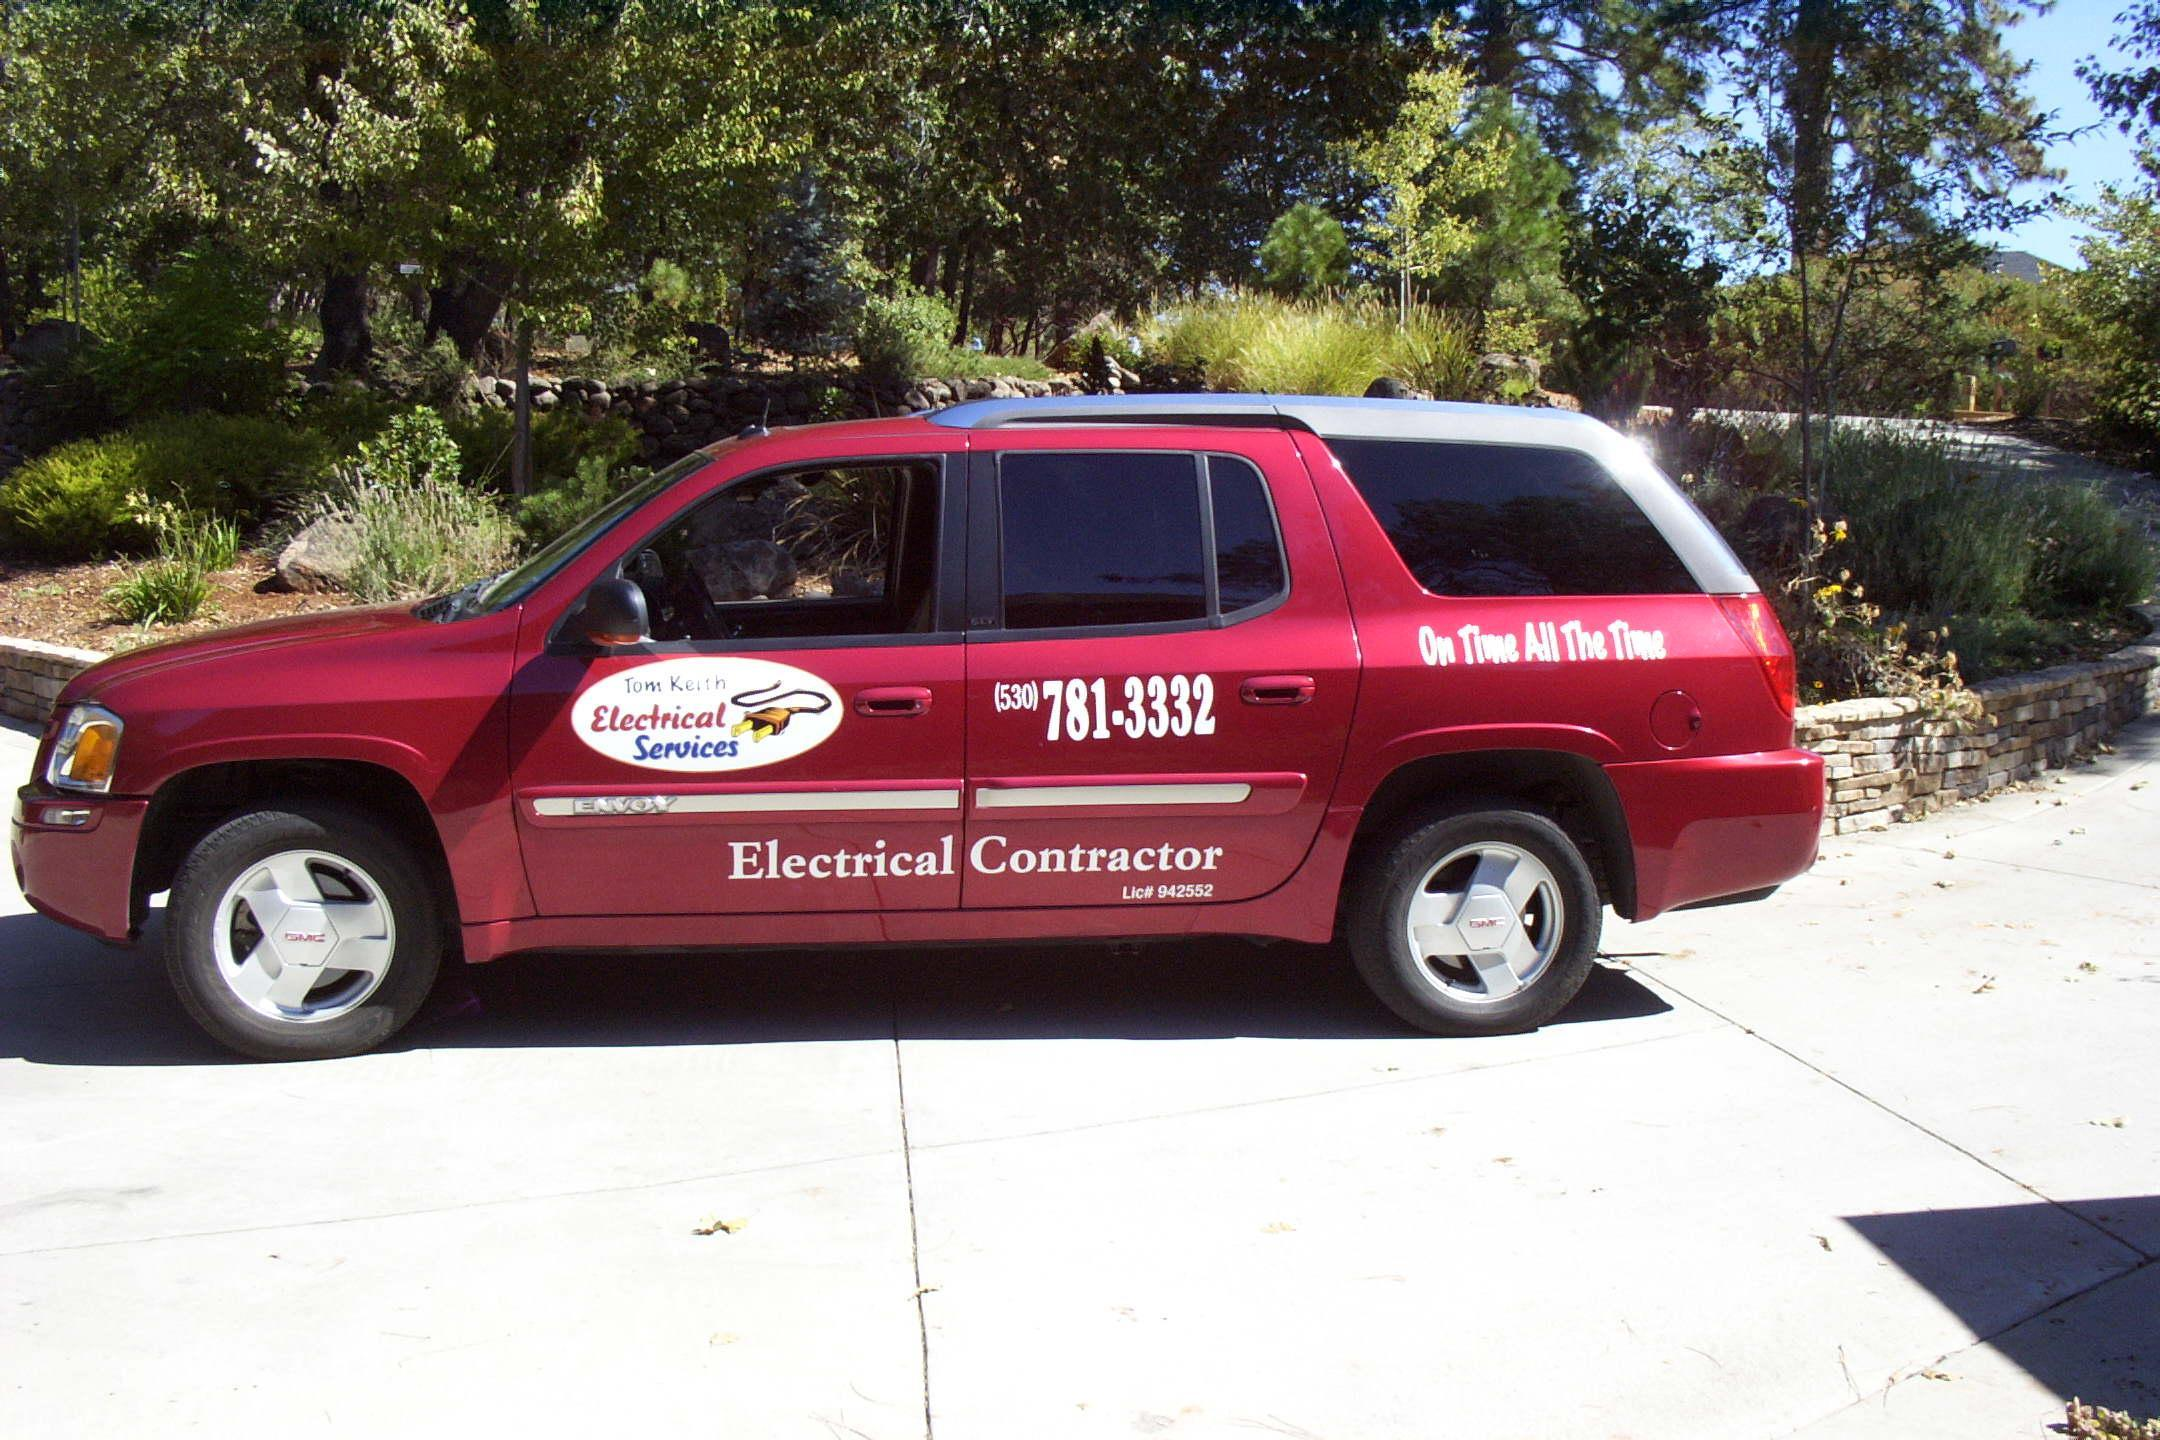 Tom Keith Electrical Services